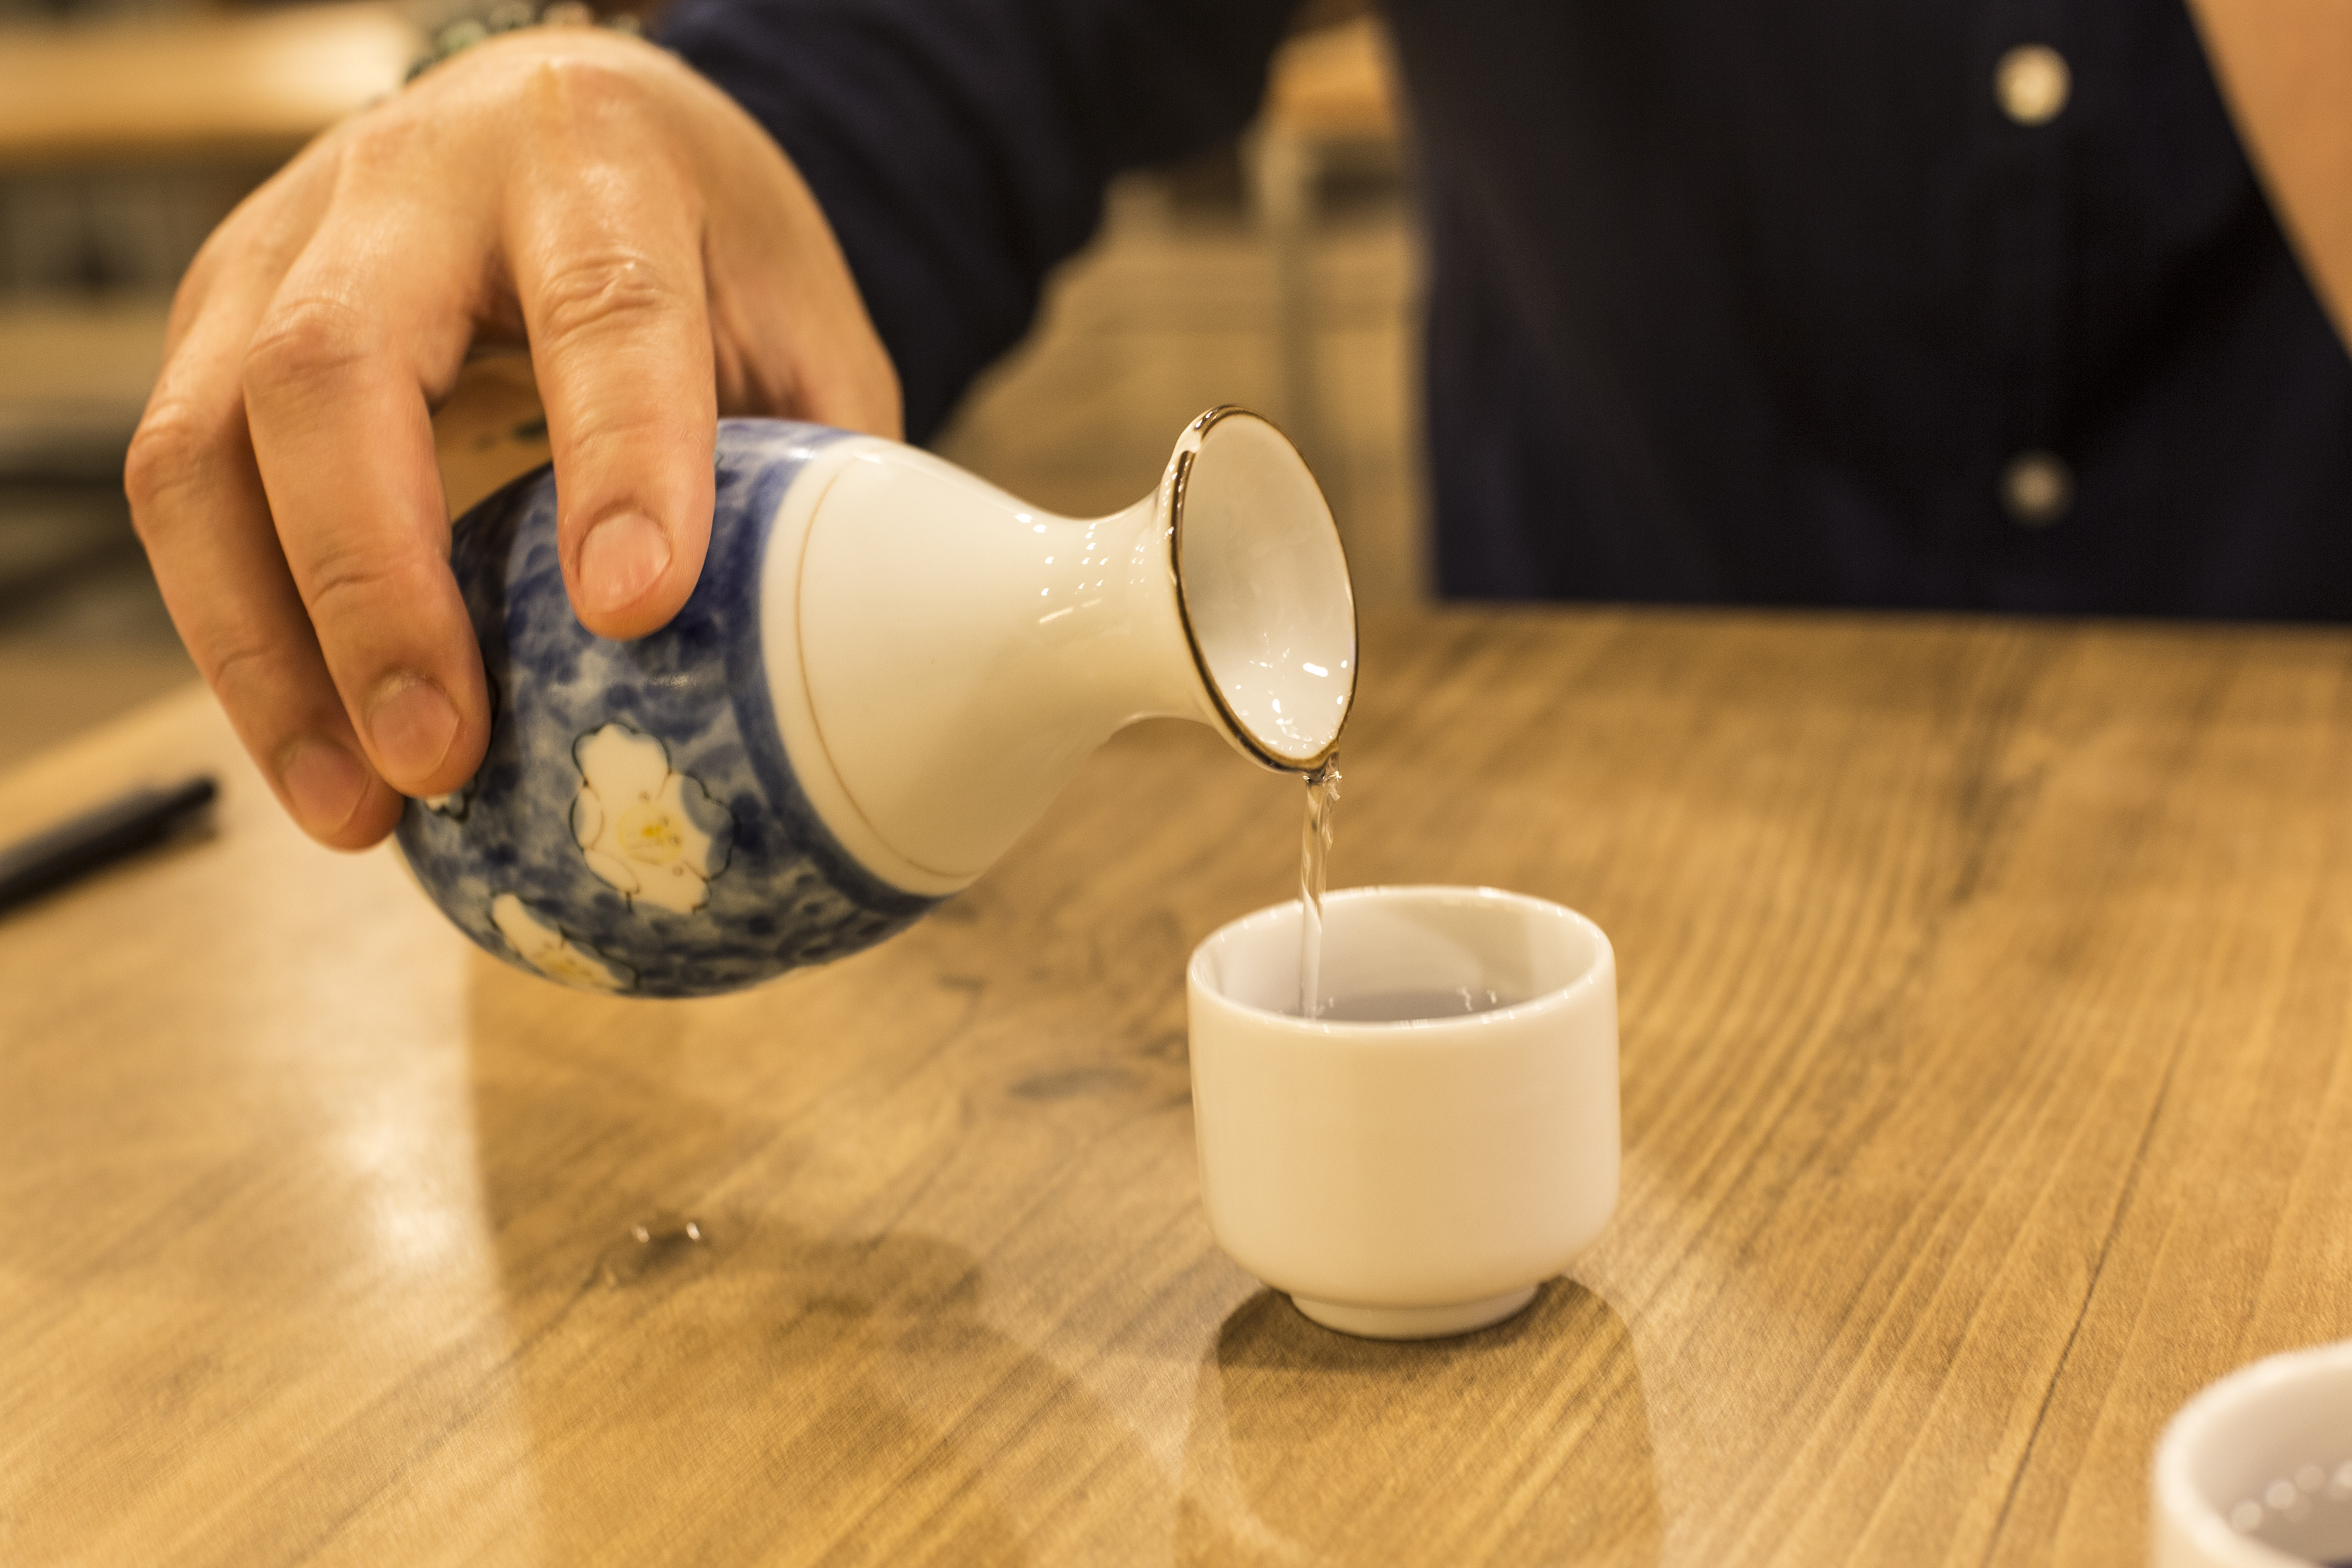 Prepared to drink sake on wood table(sake bottle and cups)